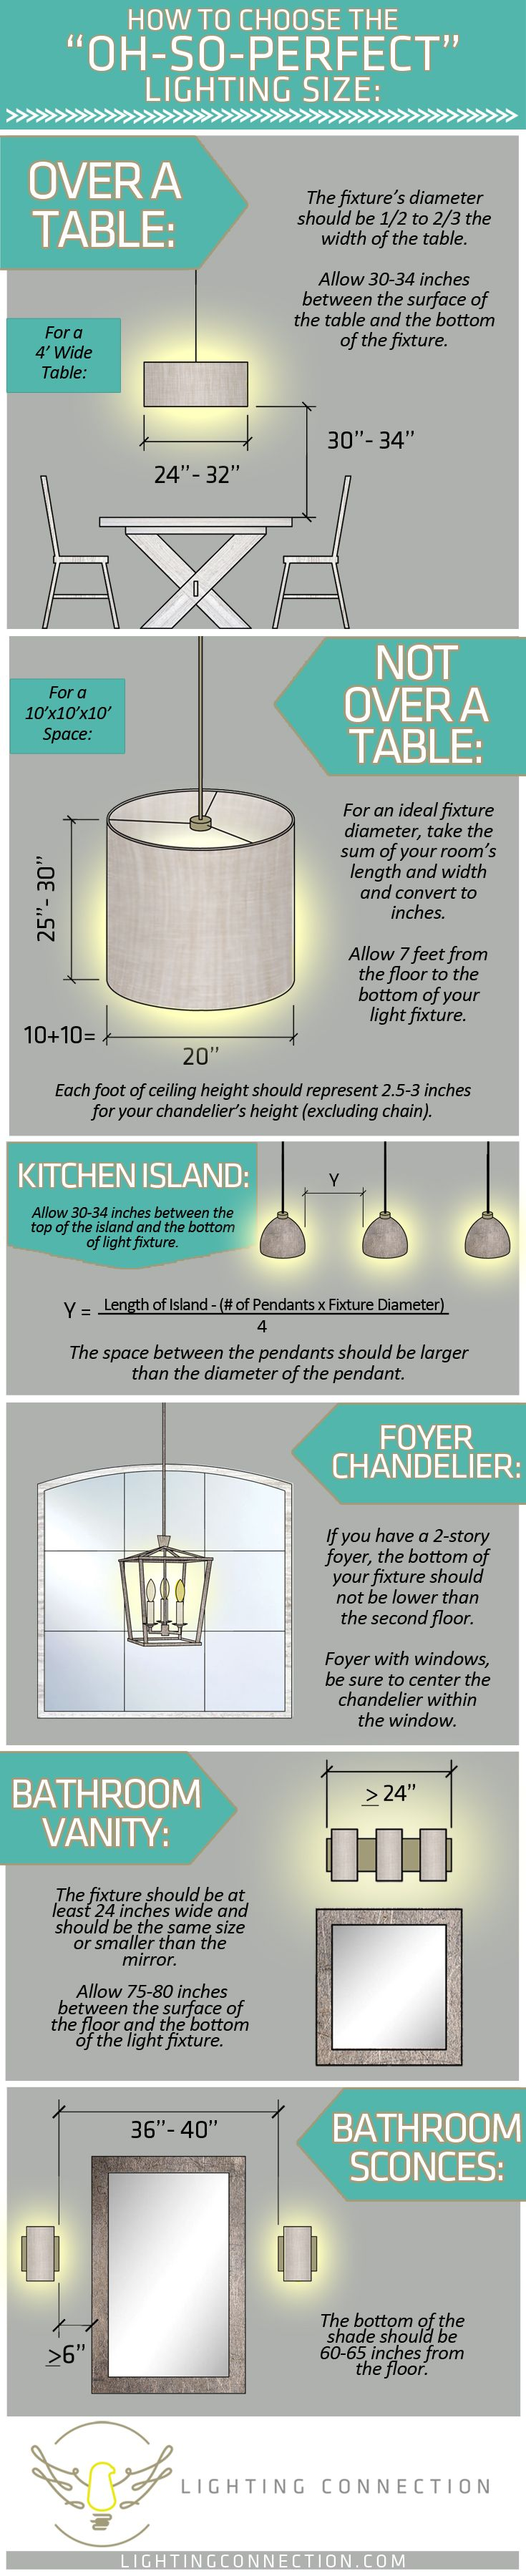 Lighting Size Guide Chandelier Sizing Help | Chandeliers, Lights and ...